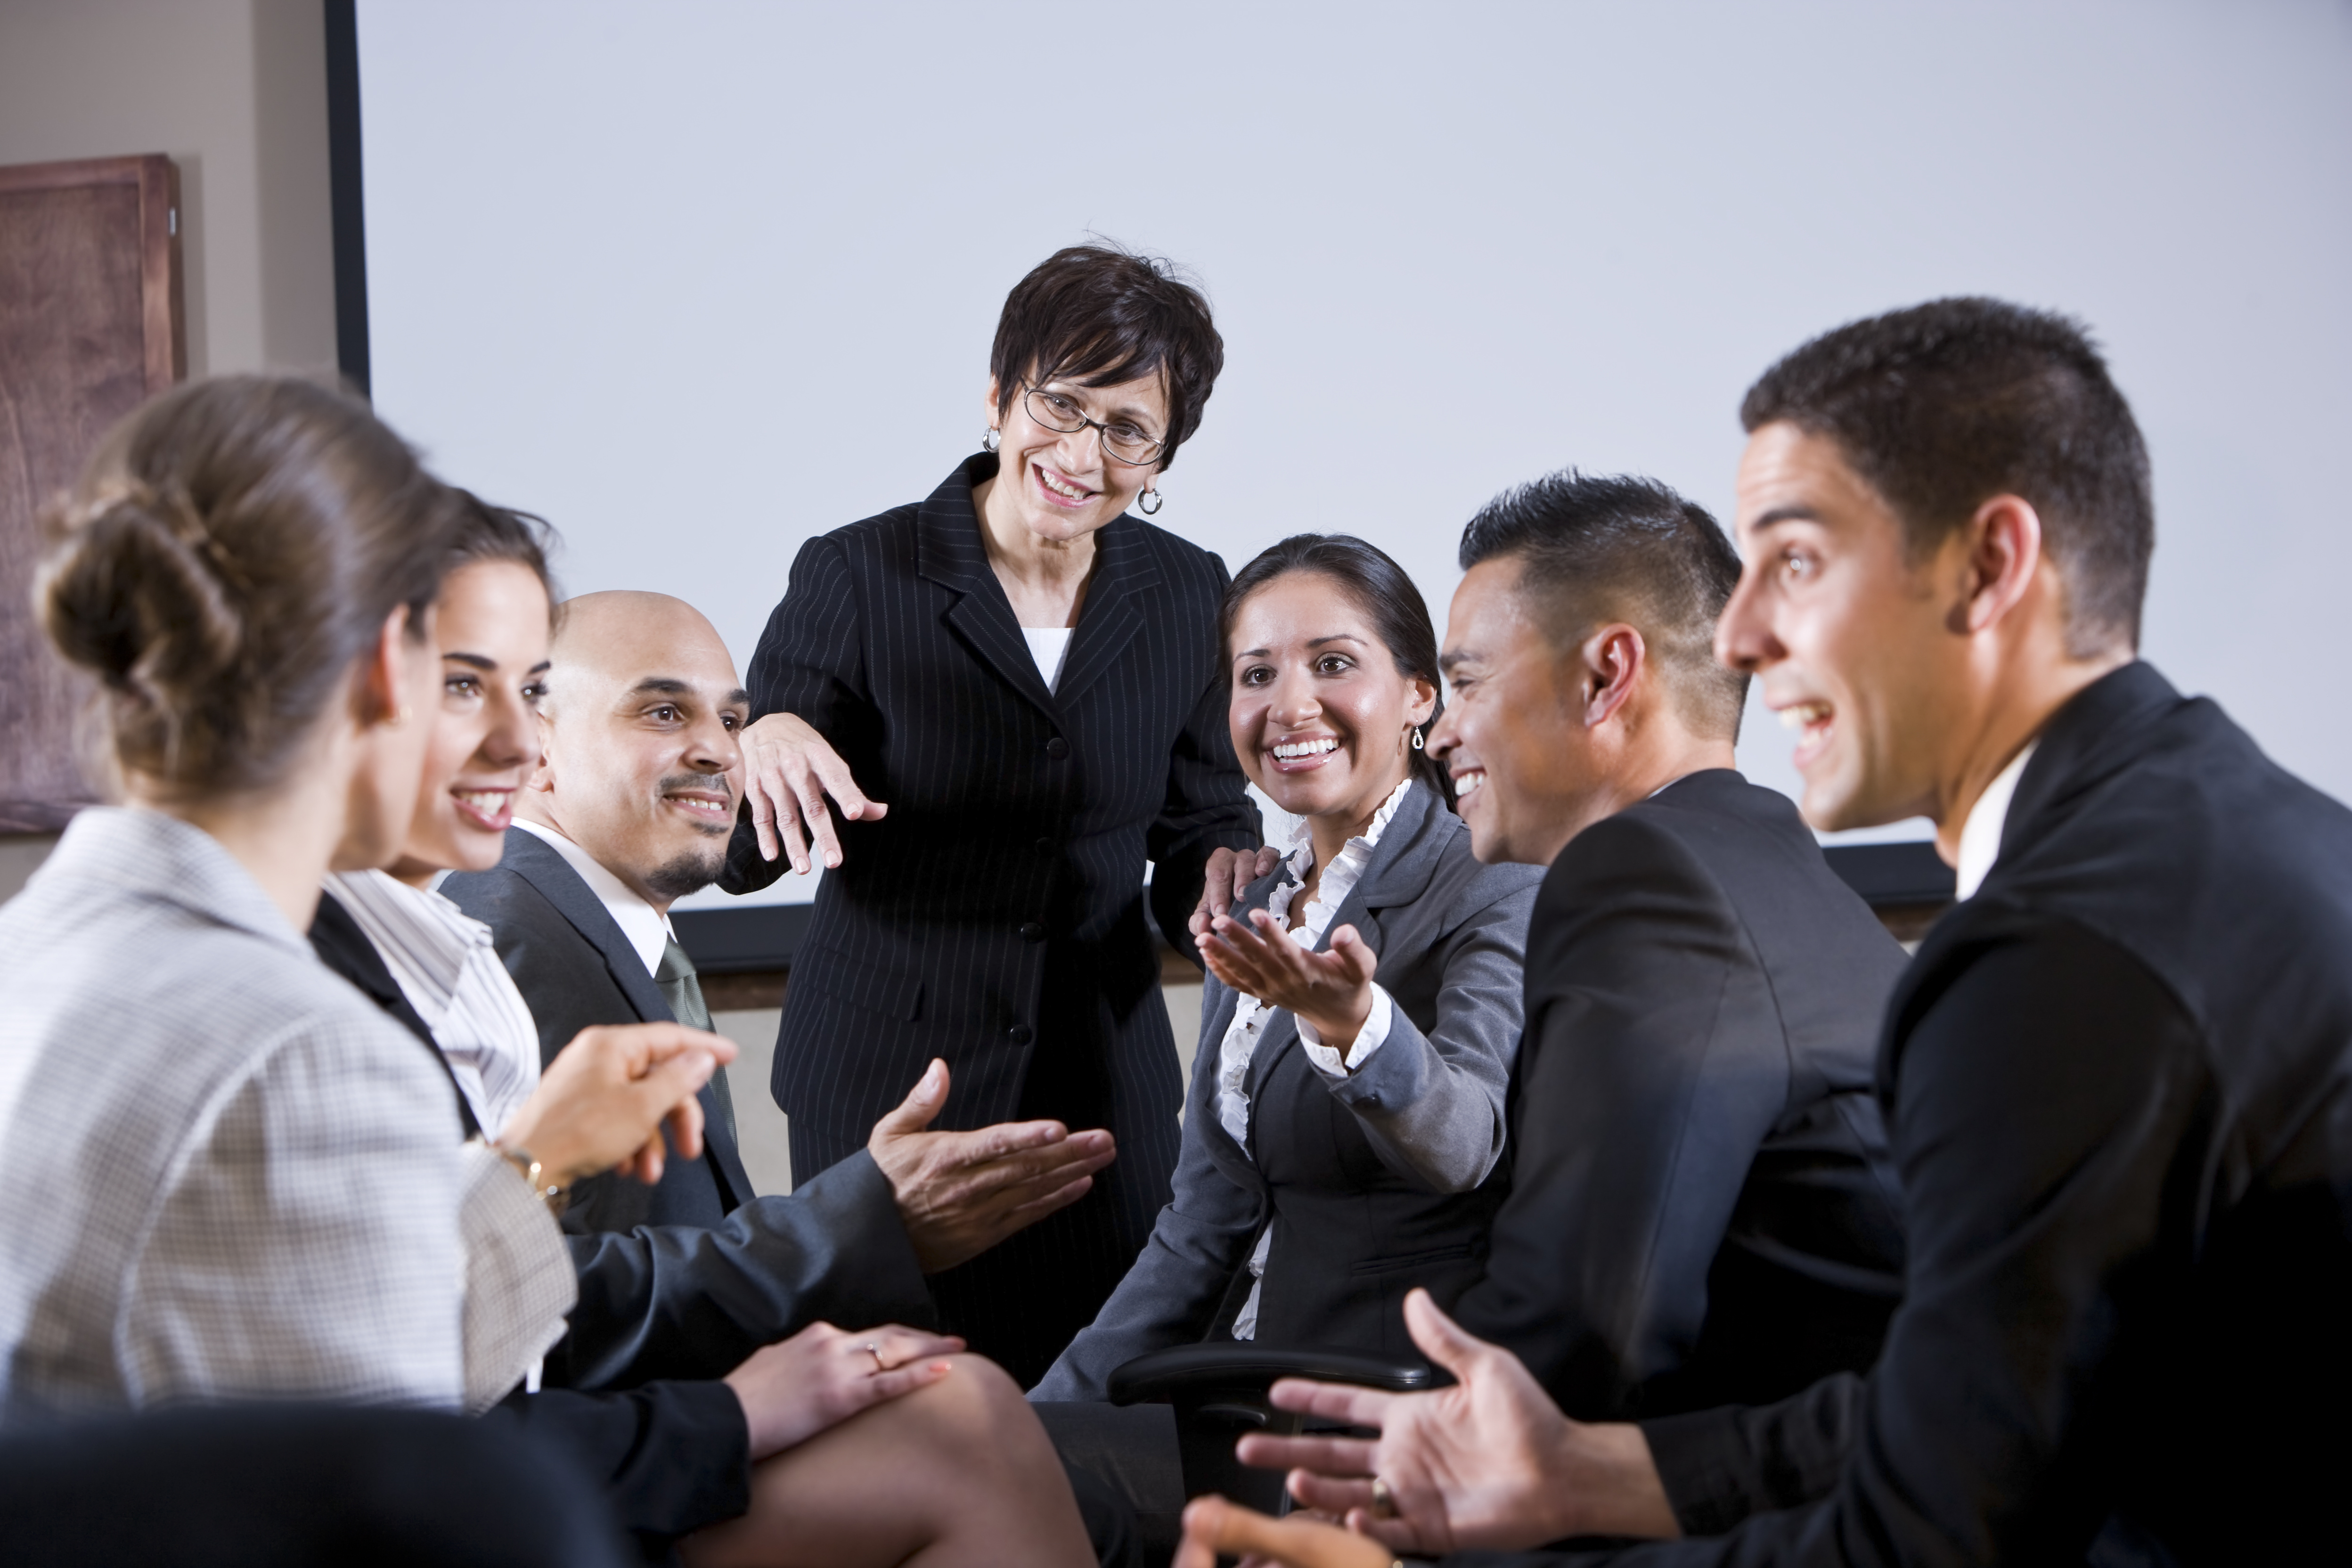 Diverse businesspeople conversing, woman at front | Capitol Hill Offices